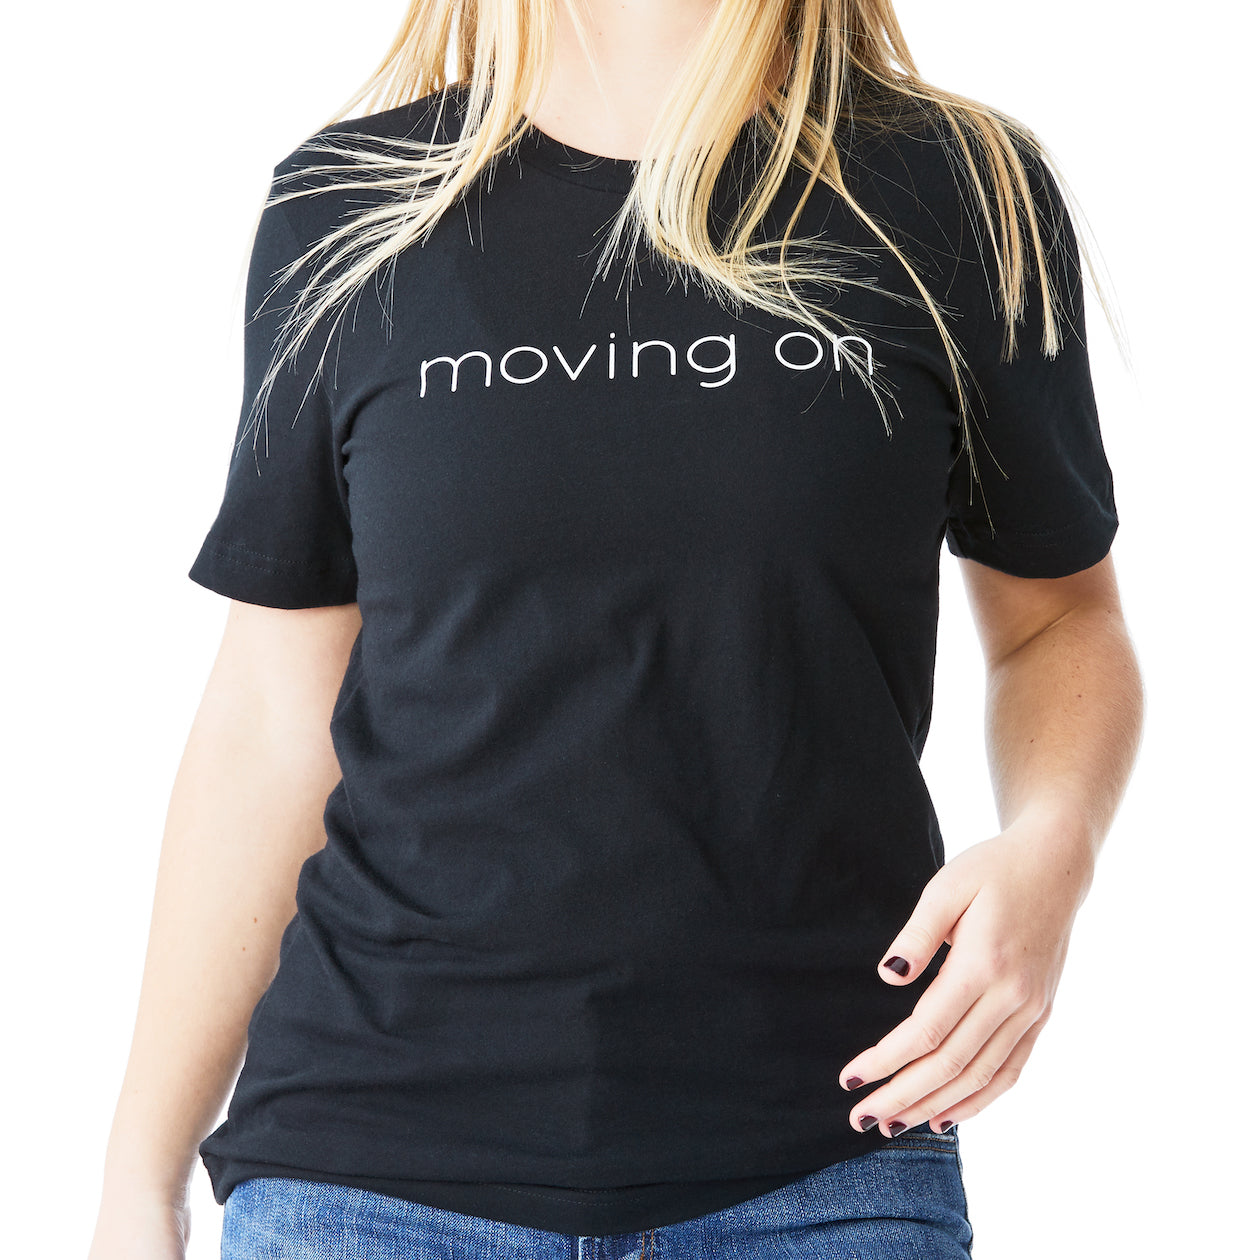 c'est beau1872 – Moving On Logo Short Sleeve Tee in Black